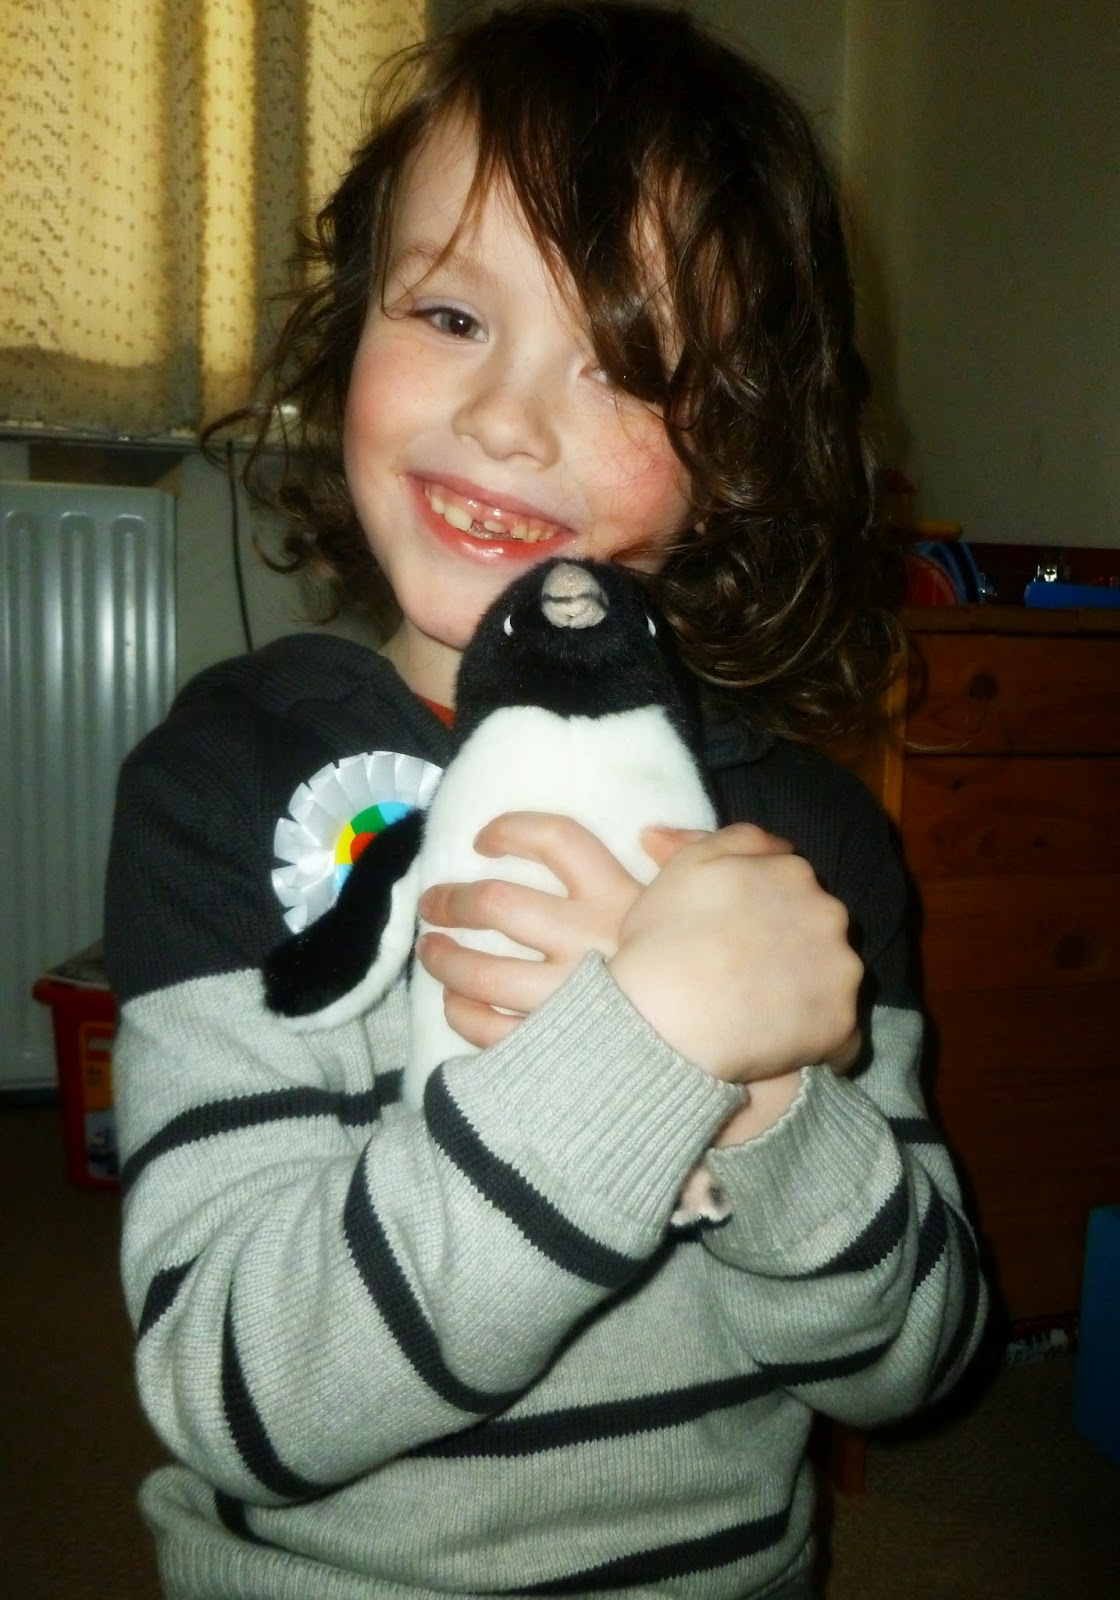 The Boy and his WWF penguin